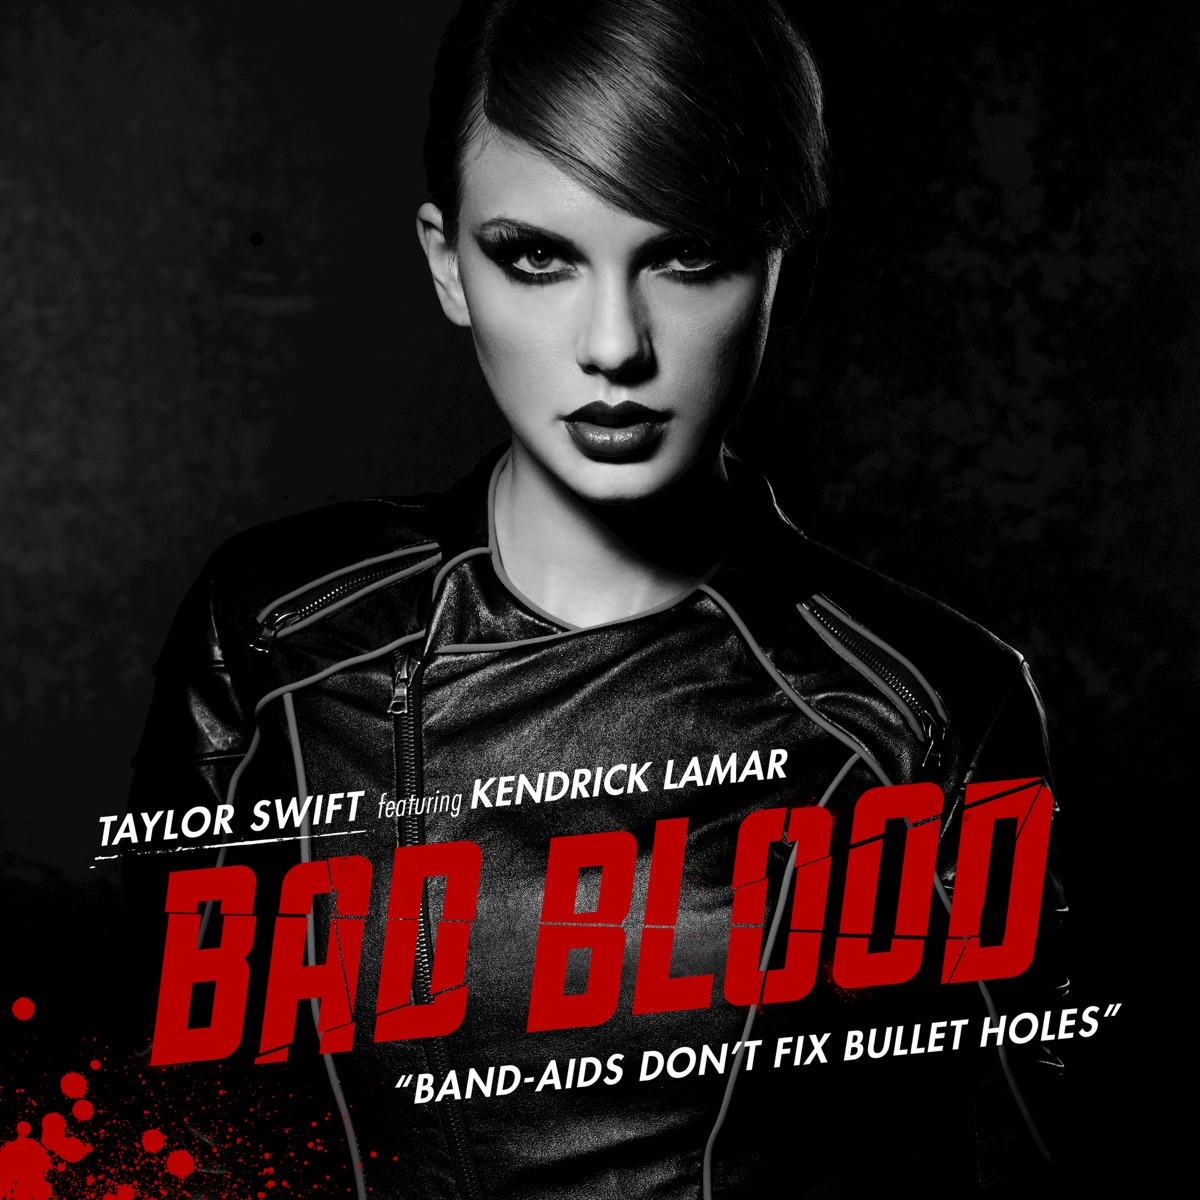 Bad Blood feat Kendrick Lamar - Single Taylor Swift CD cover